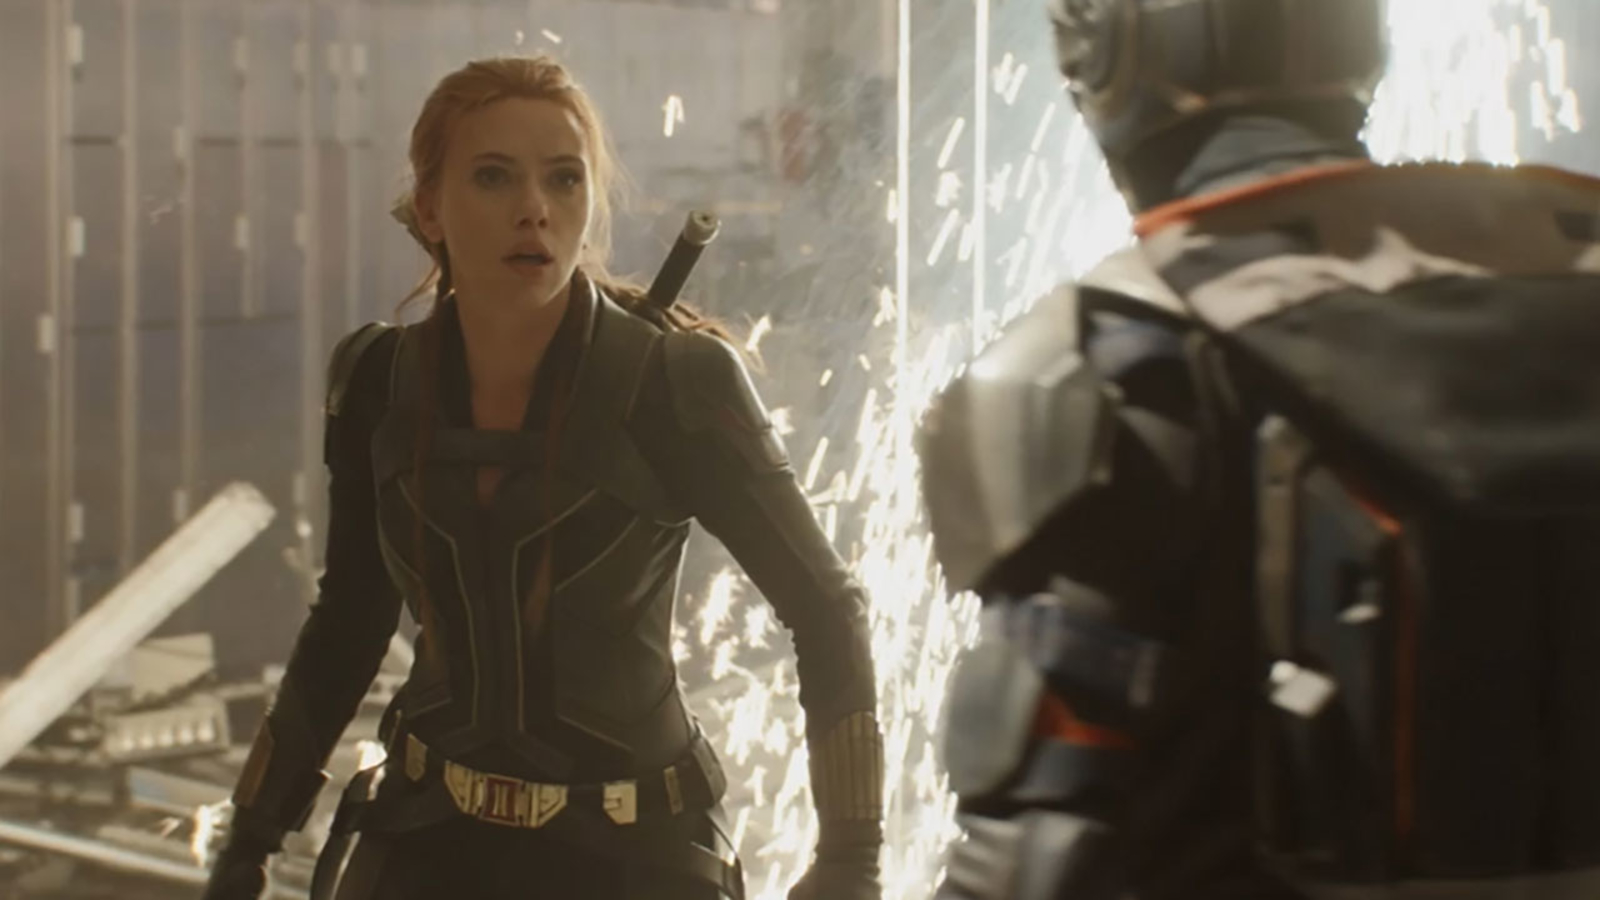 Final 'Black Widow' trailer released: Check out the trailer for 24th Marvel  Cinematic Universe film - ABC7 San Francisco